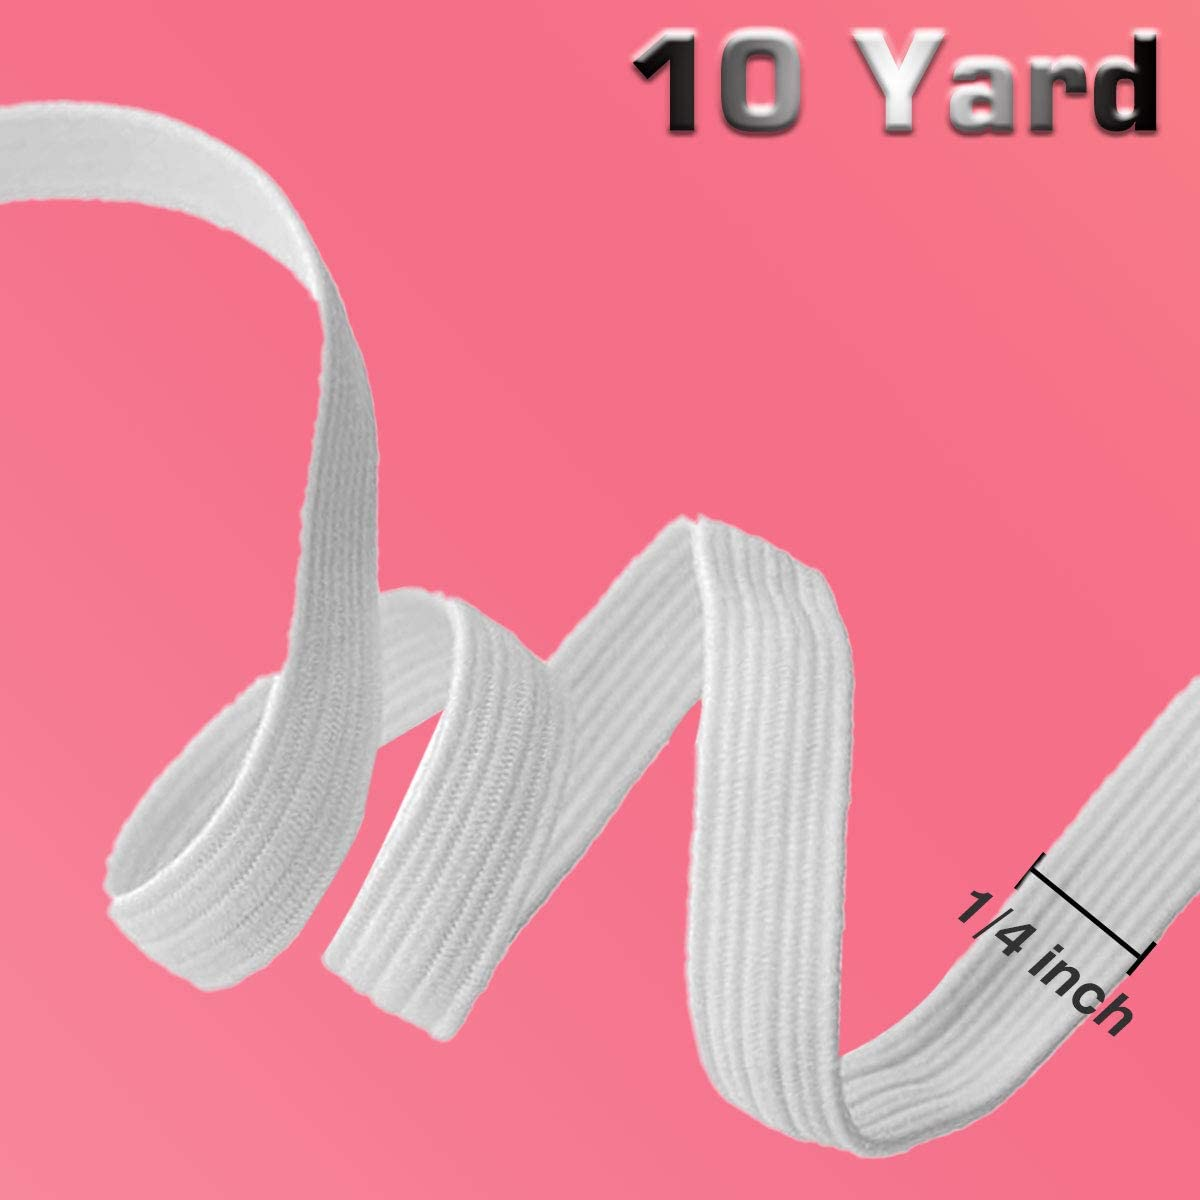 Elastic Cord for Sewing Masks, White 1/4 inch 10 Yard Elastic Rope Mask with Model Sheet Strap Stretchy String Band, Earloop Cord Ear Tie Rope Handmade DIY.